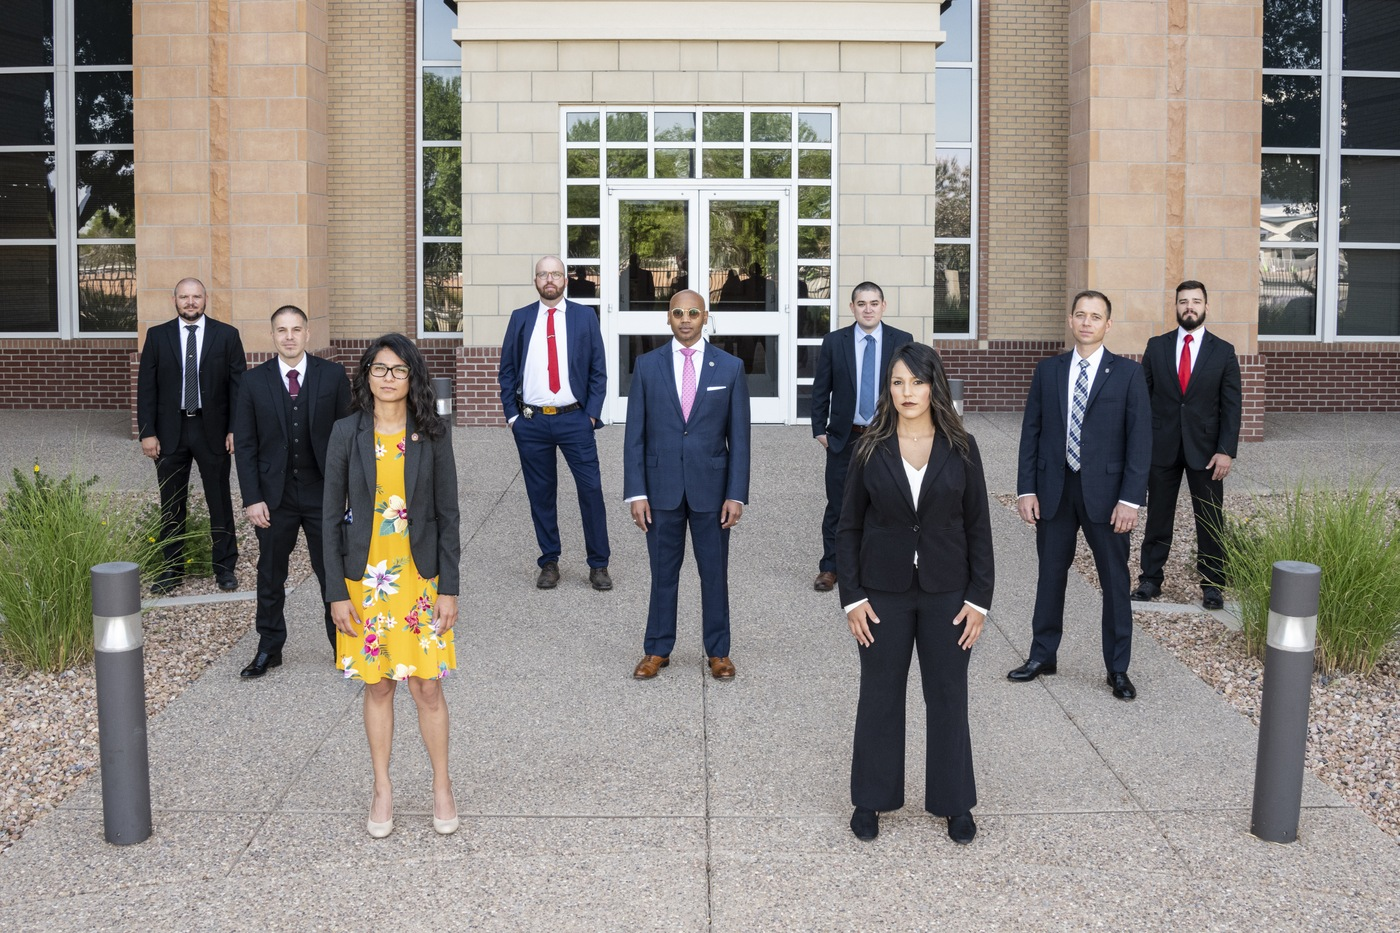 The FBI Child Exploitation and Human Trafficking Task Force welcomed six new task force officers representing the Bernalillo County Sheriff's Office and the Second Judicial District Attorney's Office on Monday (6/15/2020). They join our team and are committed to protecting the American people and upholding the U.S. Constitution (and social distancing). Three FBI Special Agents who are on the Task Force joined them for this photo. Credit: FBI.